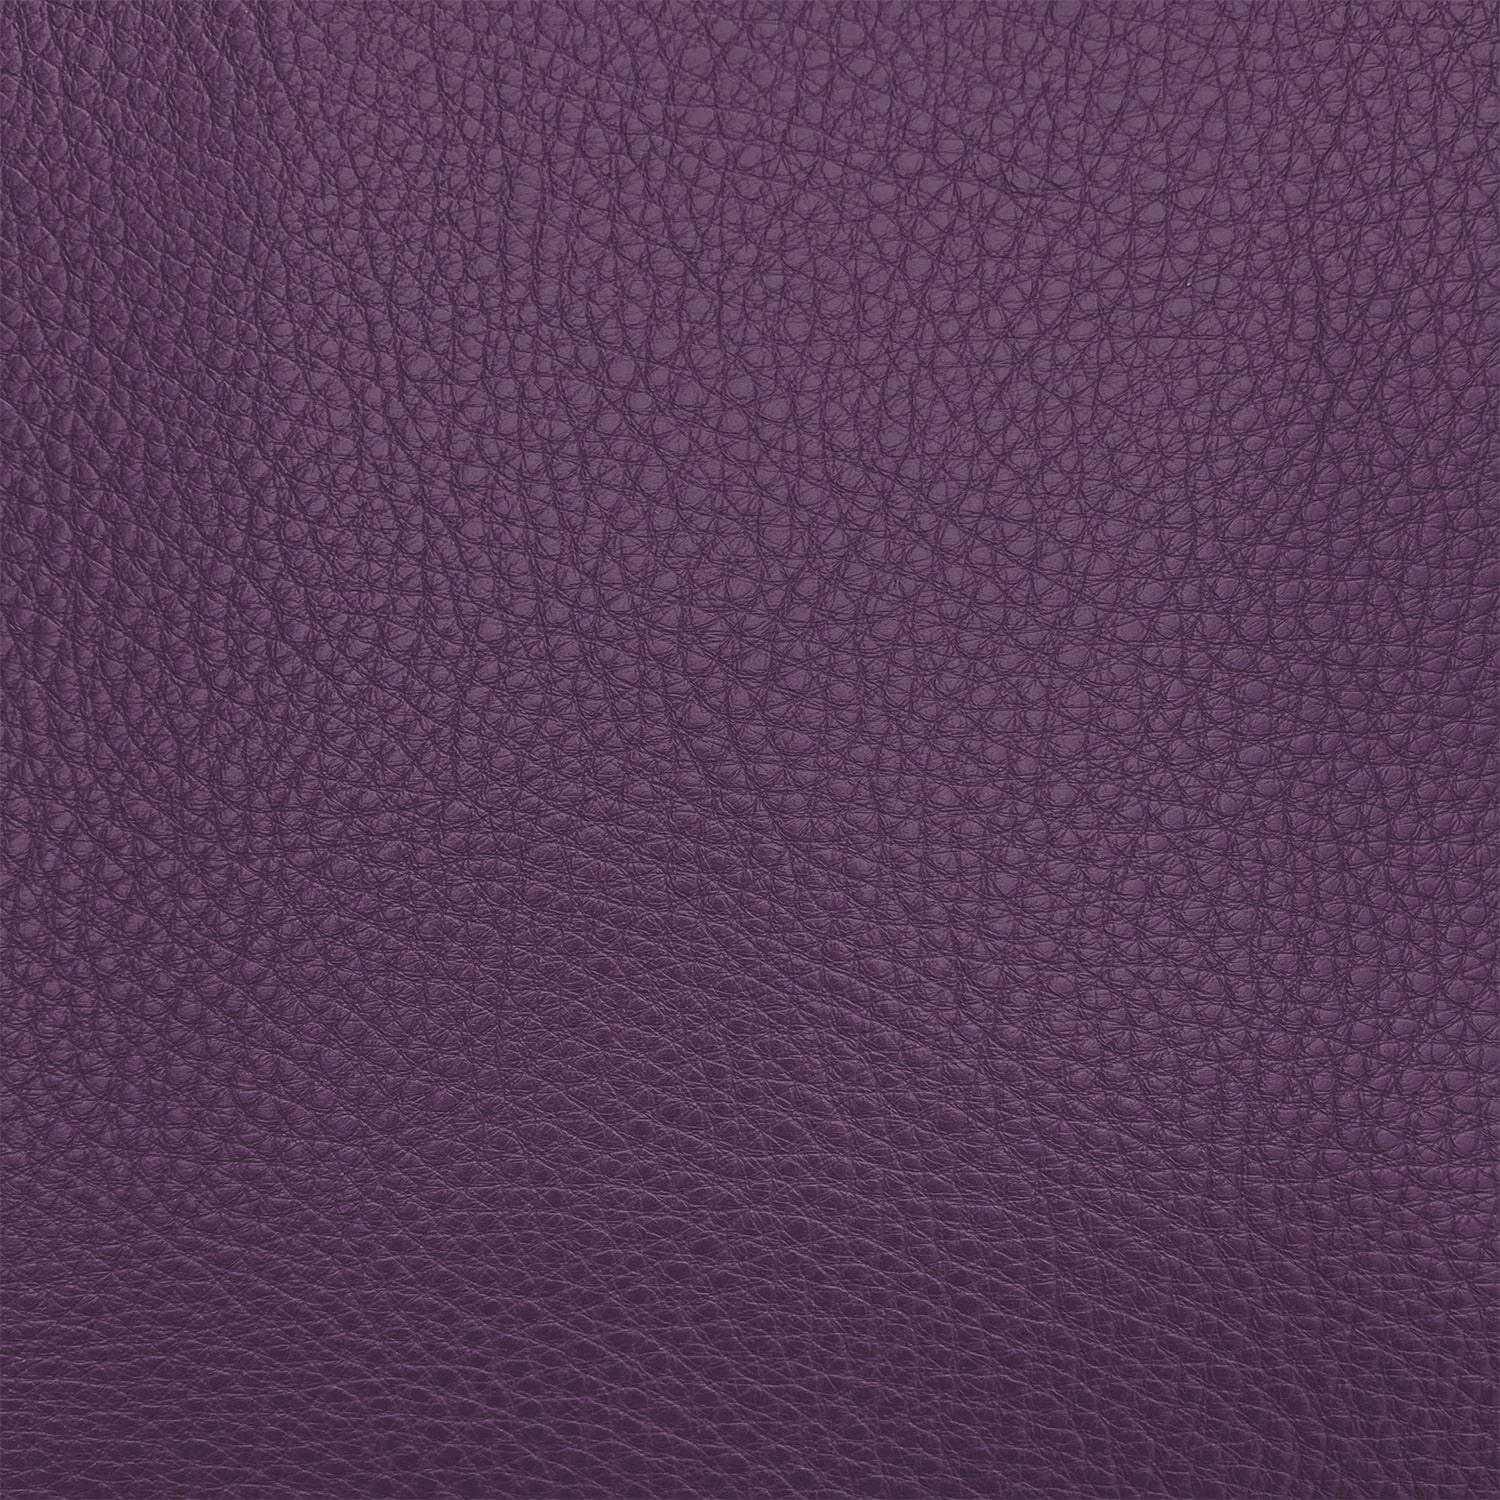 Bison: Plum (grade F): #BIS1801<br>Thick, soft, even coloration; medium protection